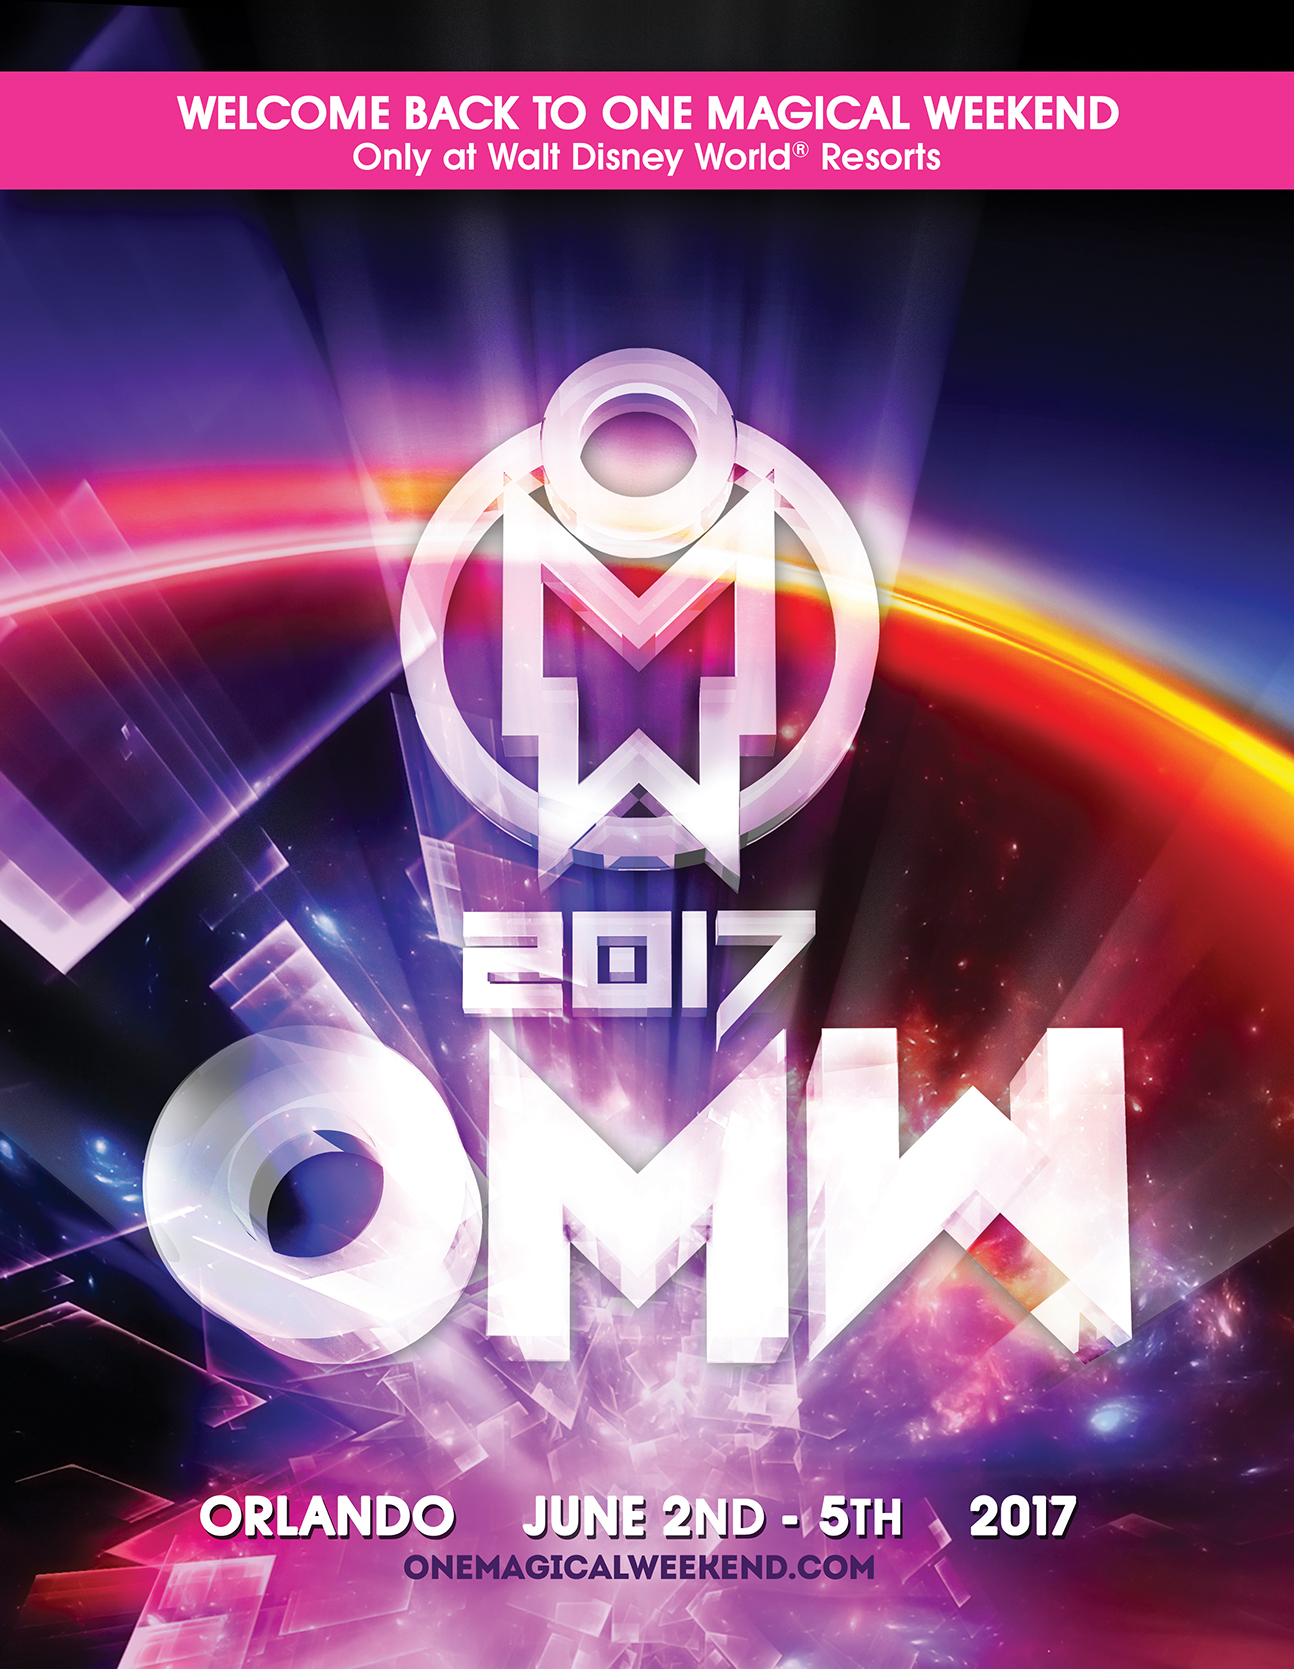 One Magical Weekend 2017 Guide